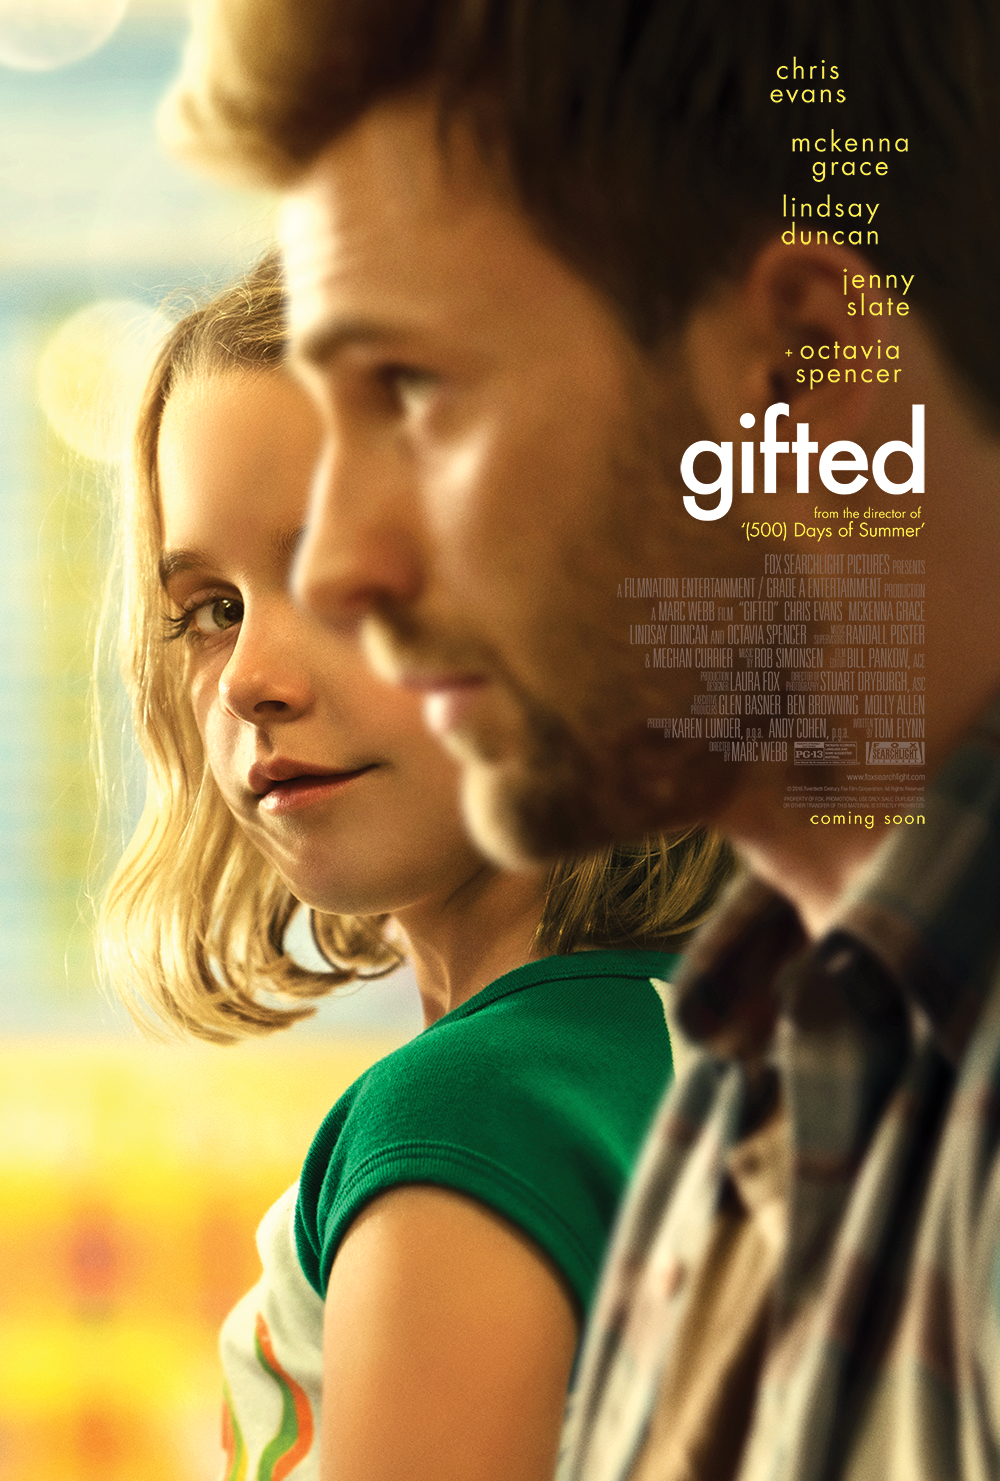 gifted-epk-GIFTED one-sheet_rgb